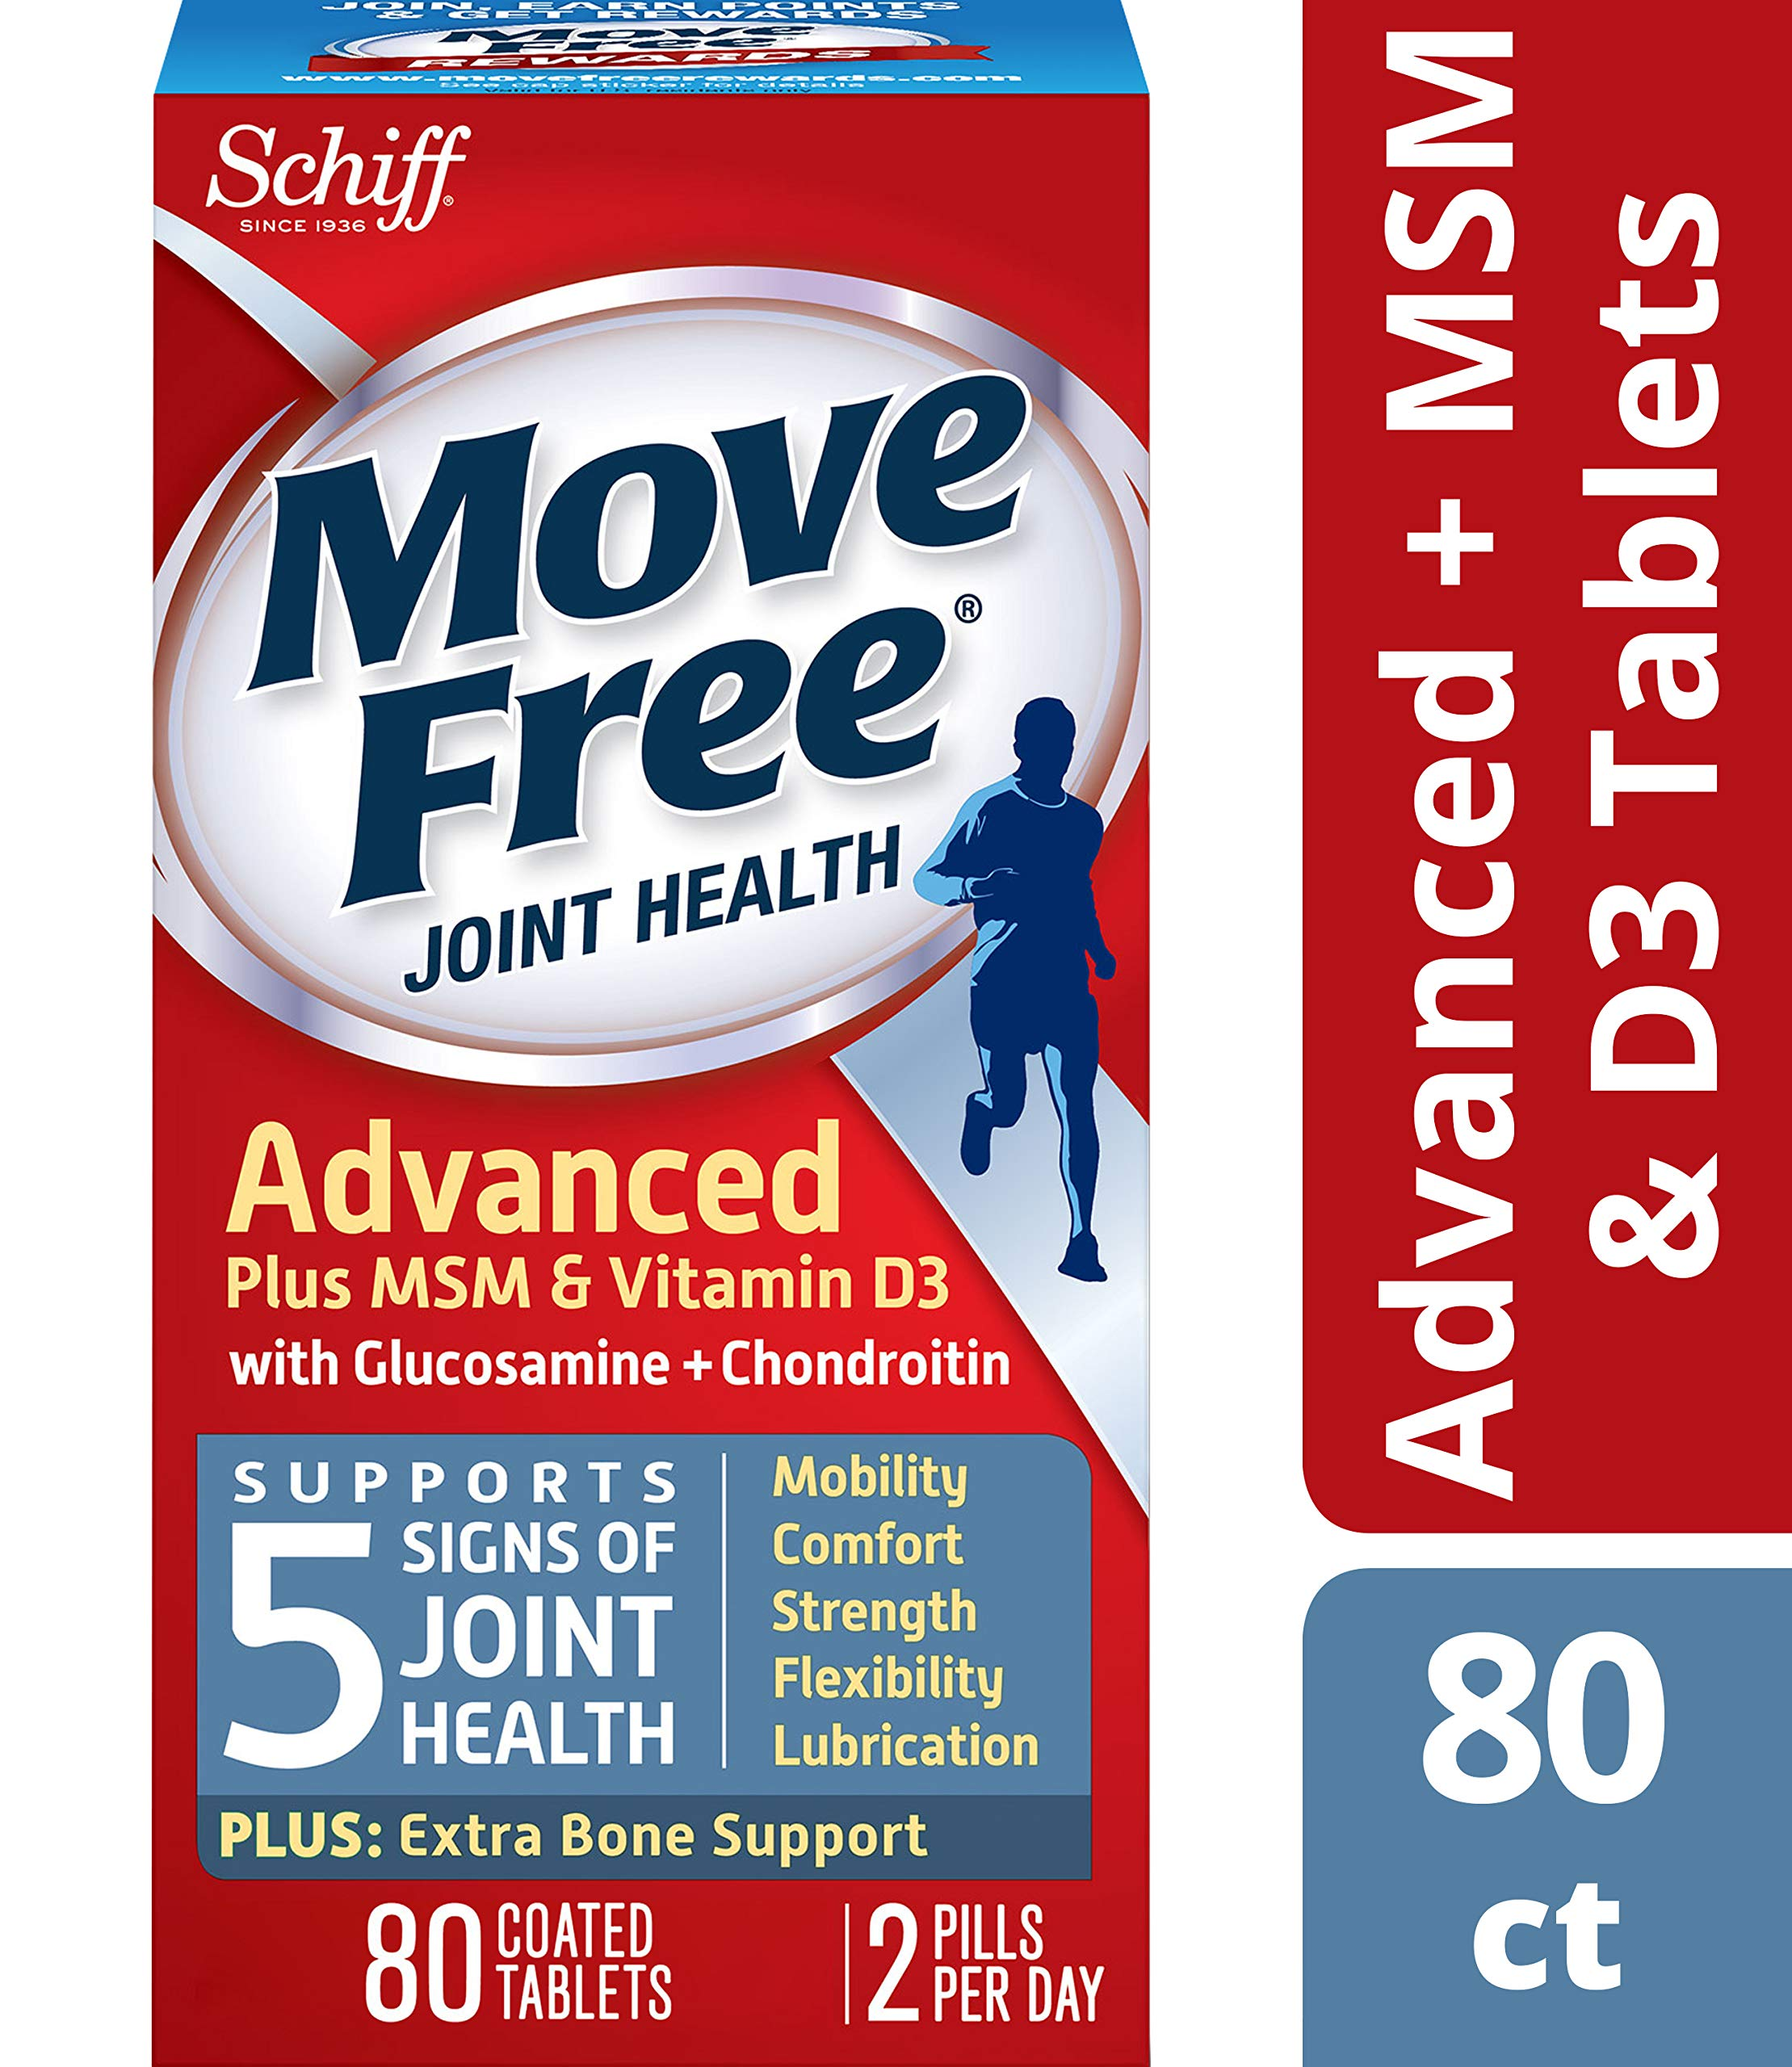 Move Free Advanced Plus MSM & D3 Joint Health Supplement with Glucosamine & Chondroitin, Supports Mobility, Comfort, Strength, Flexibility & Joint Lubrication, 80 Count (Pack of 4)